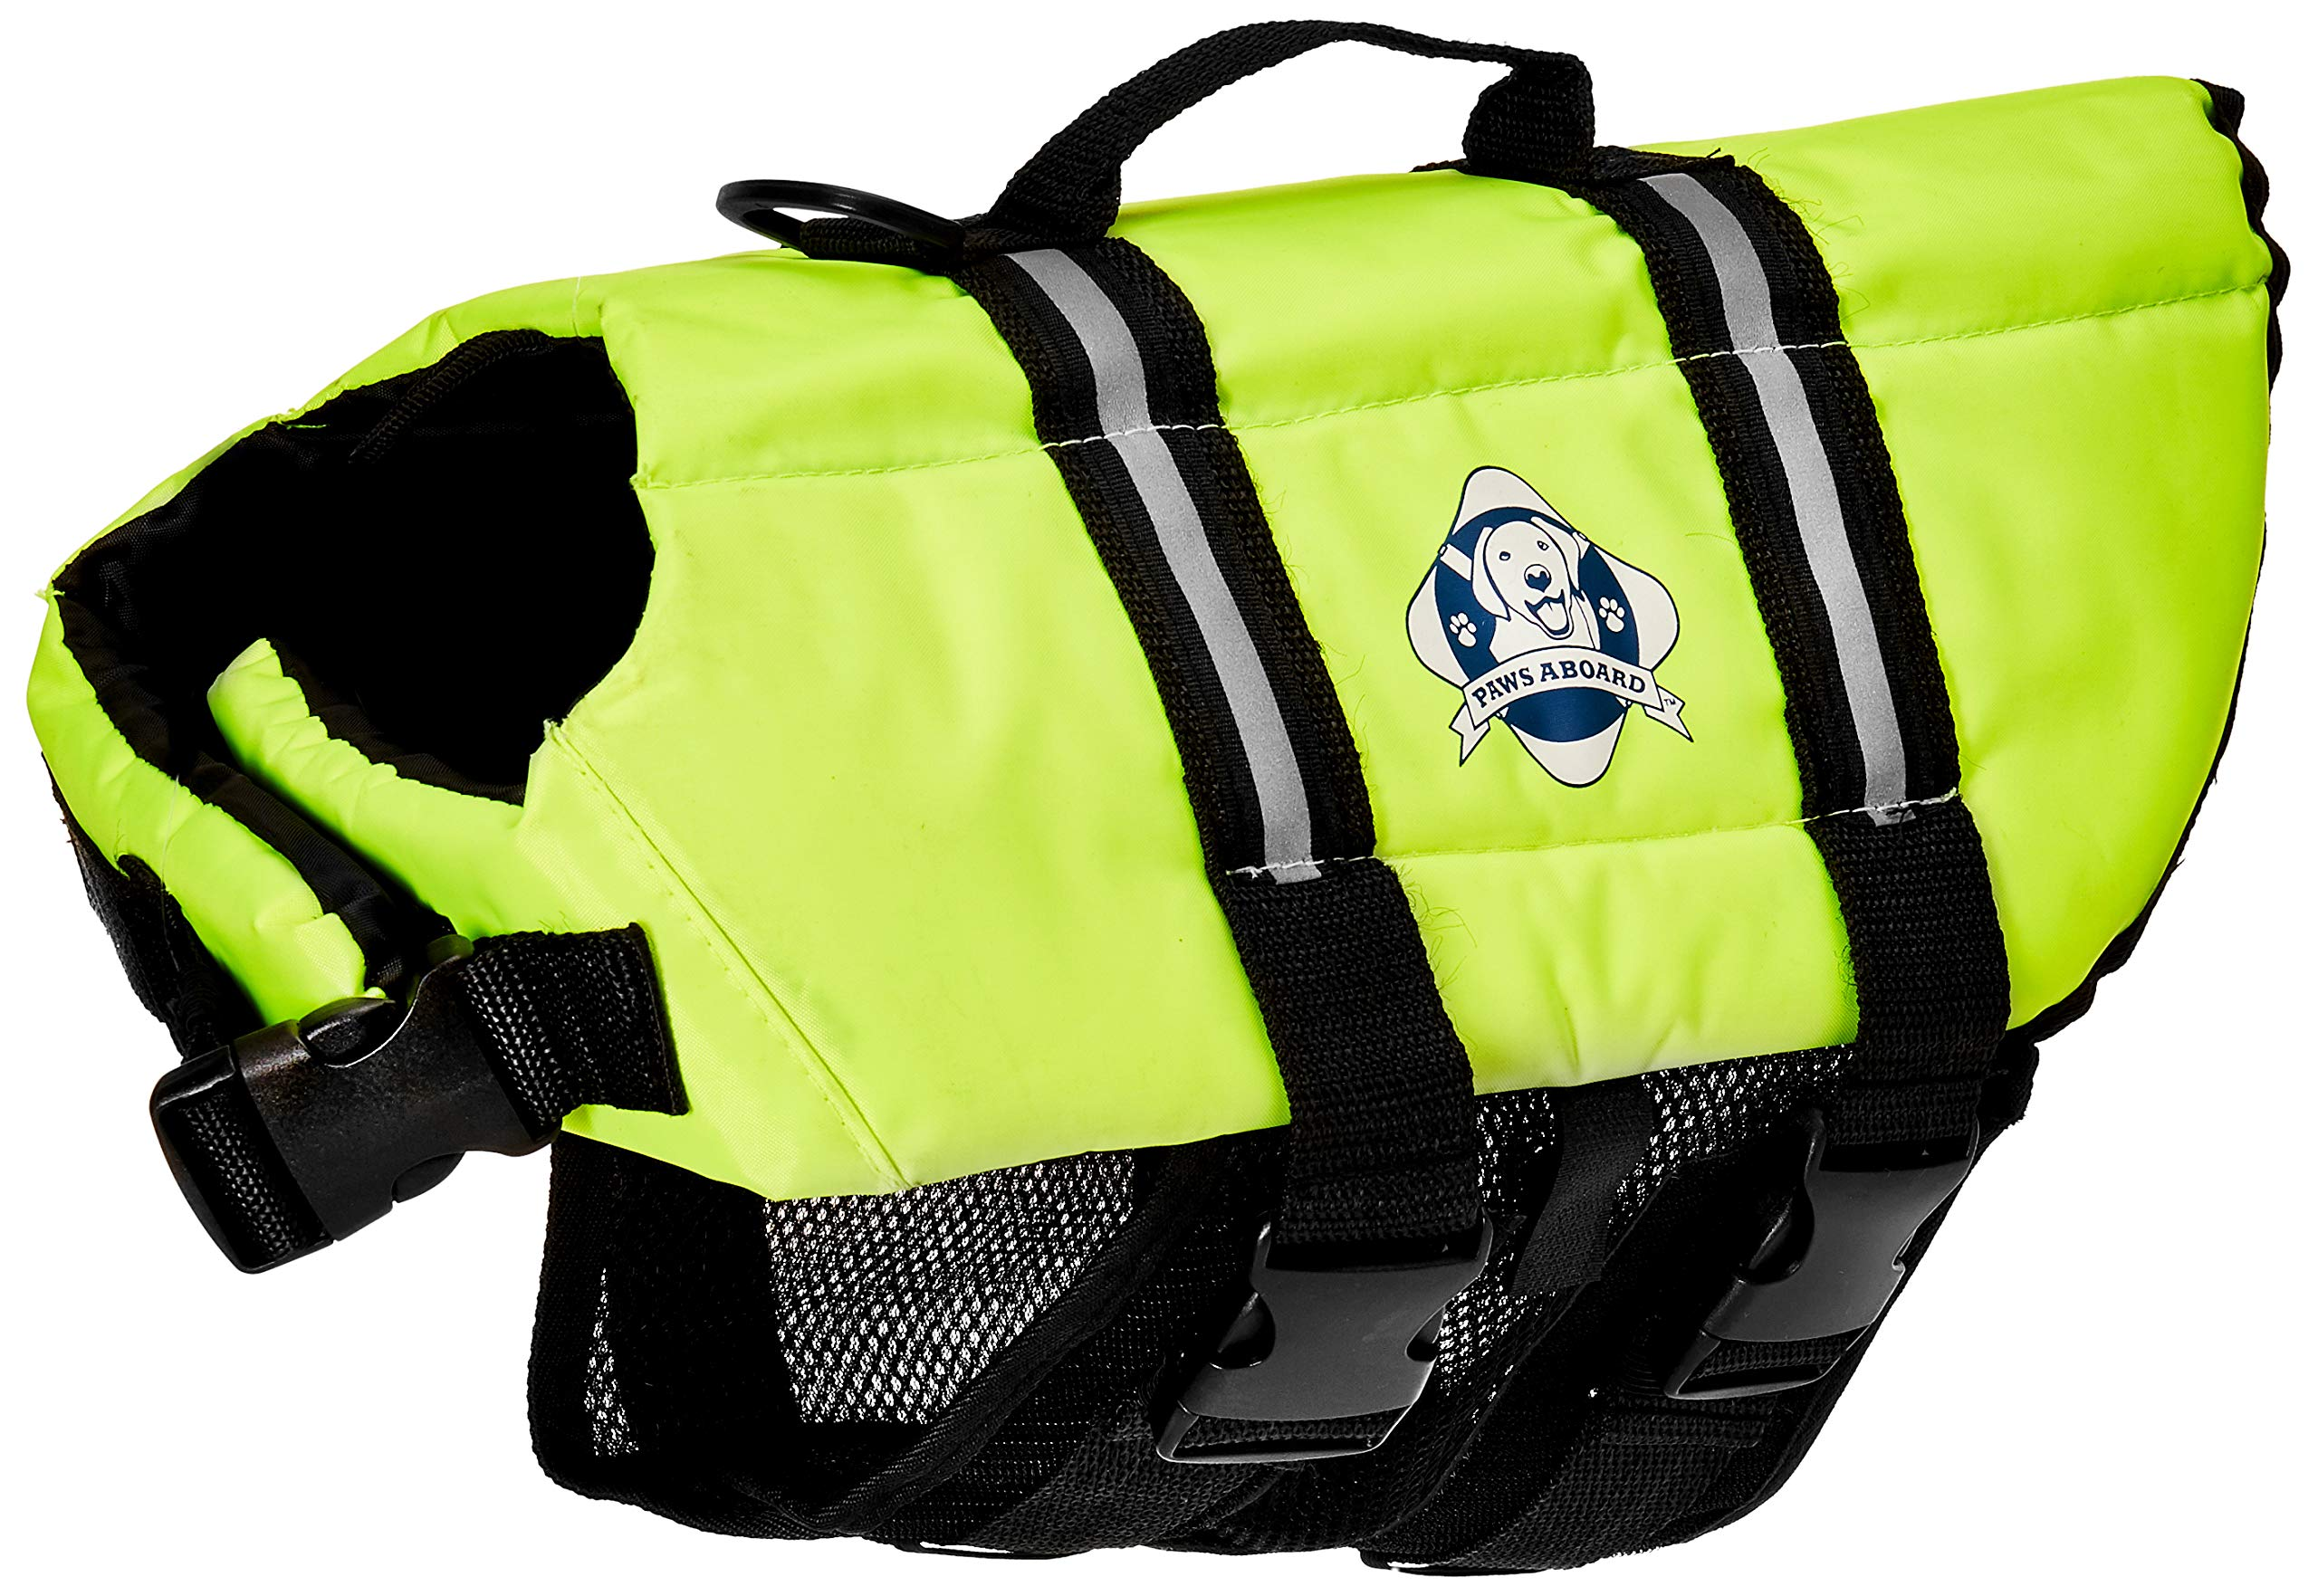 Paws Aboard Dog Life Jacket,  Fashionable Dog Life Vest for Swimming and Boating - Neon Yellow by Paws Aboard